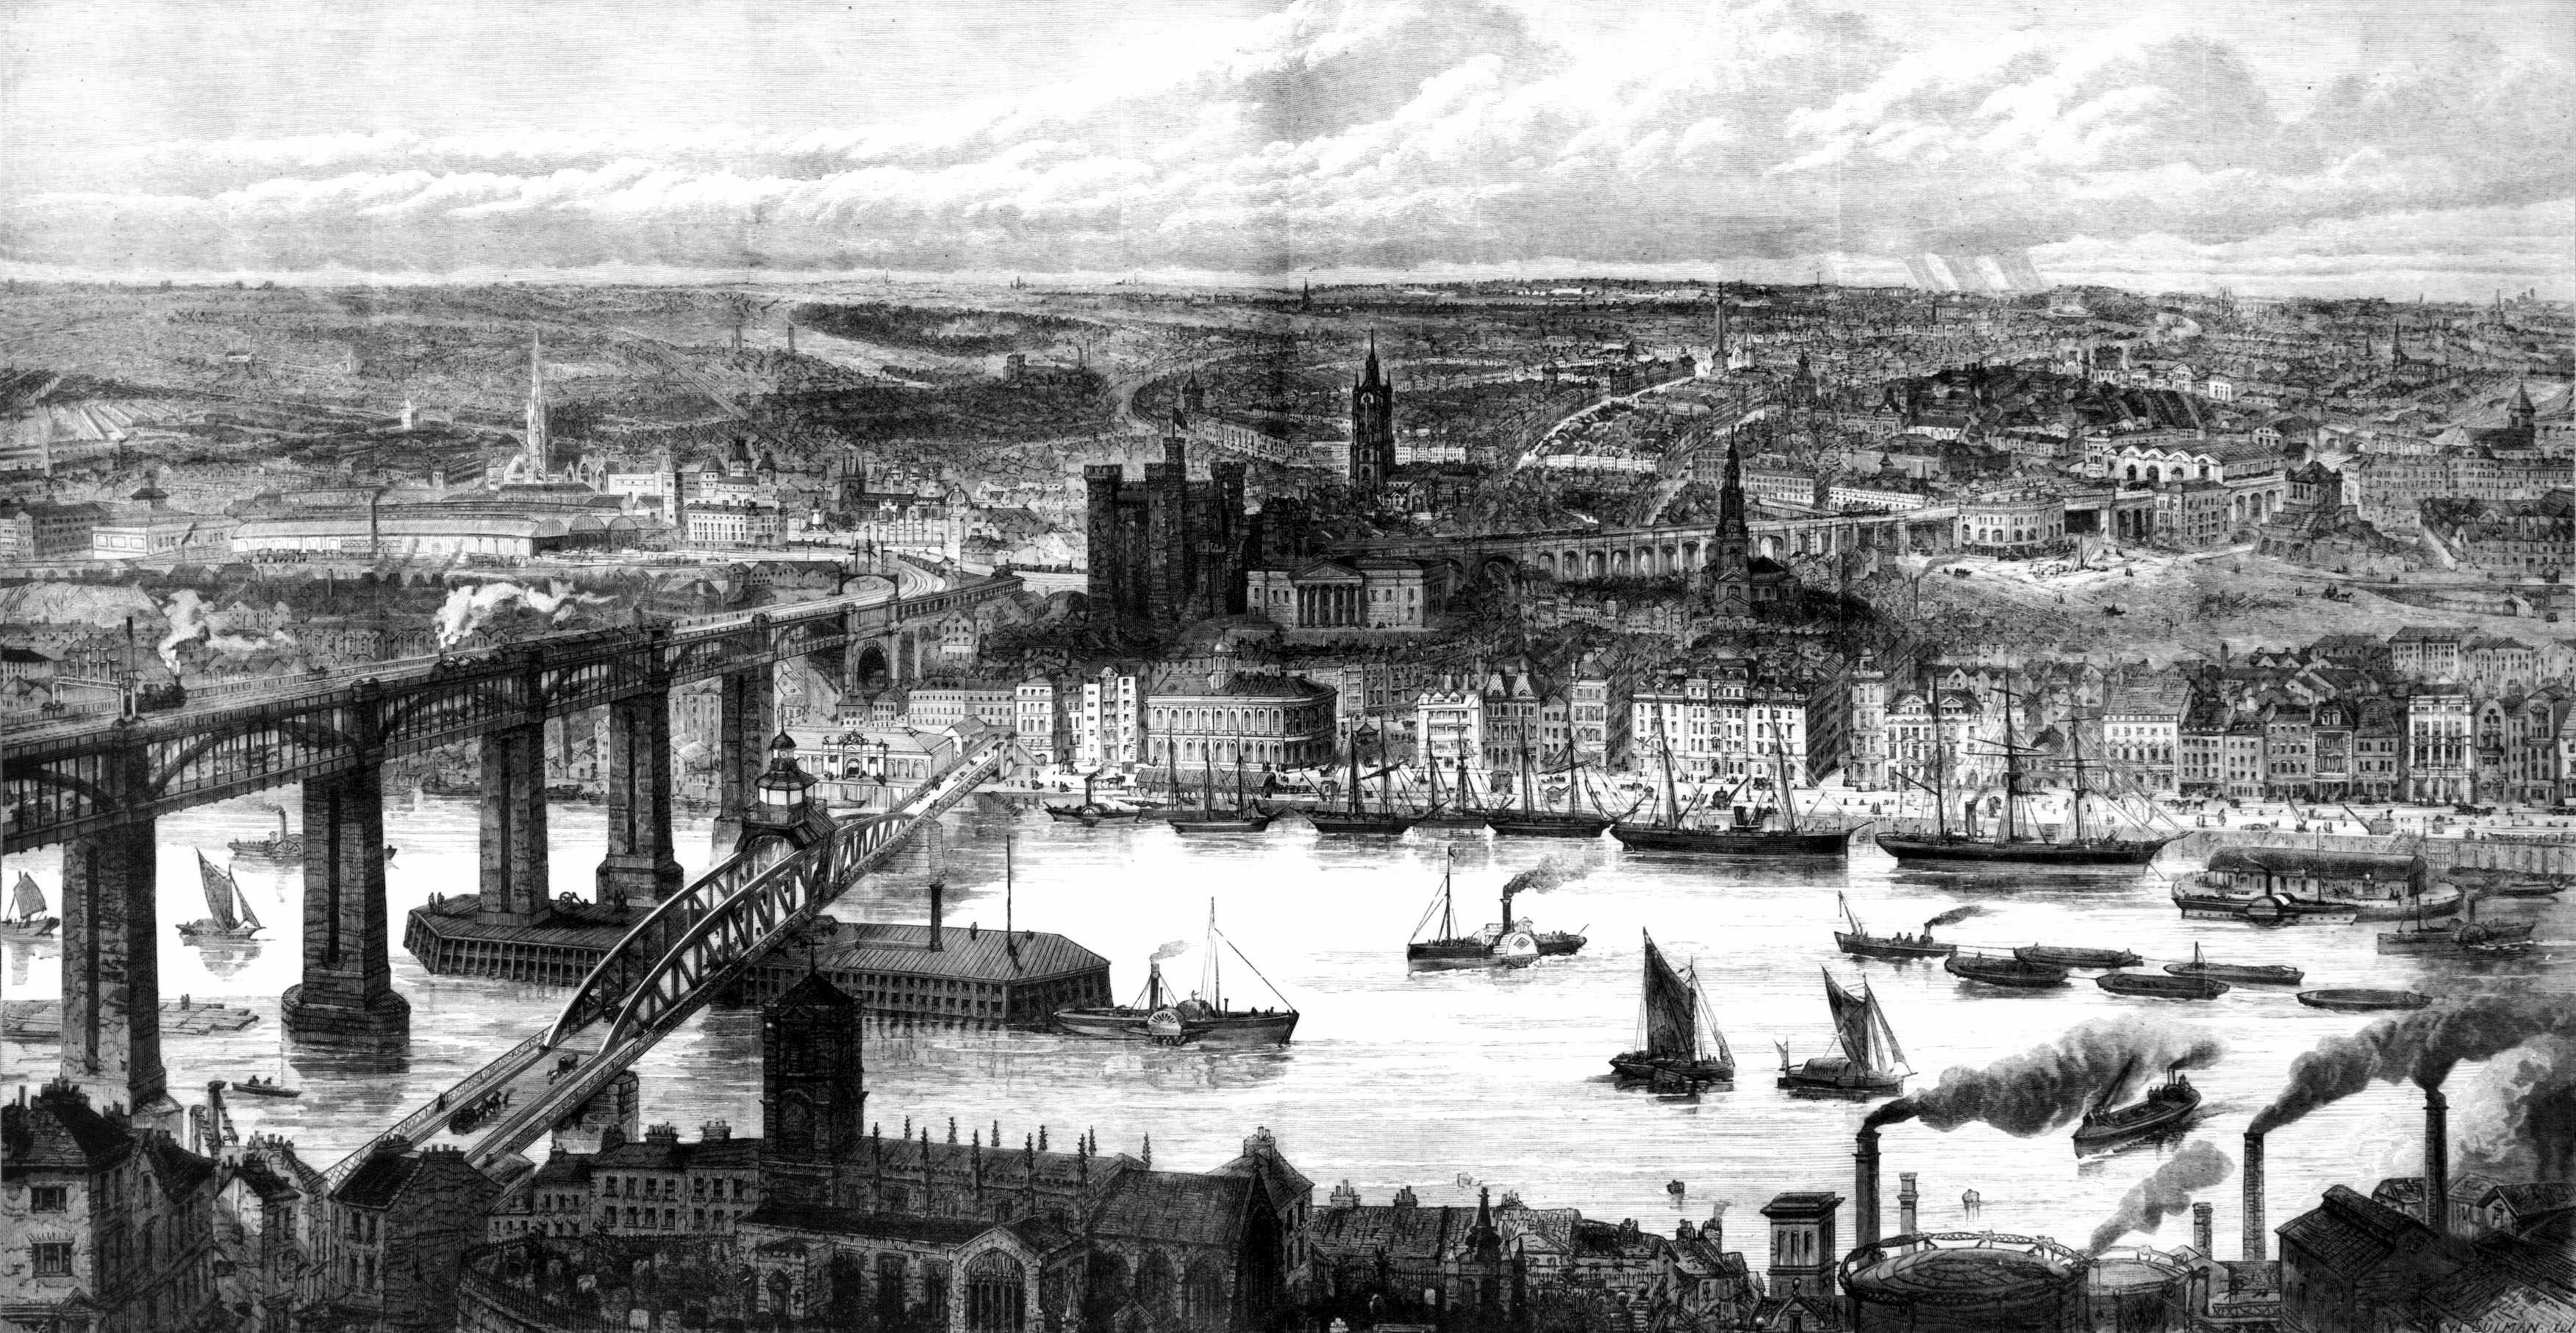 Newcastle upon Tyne, 1877, published in the Illustrated London News. (Photo by SSPL/Getty Images)